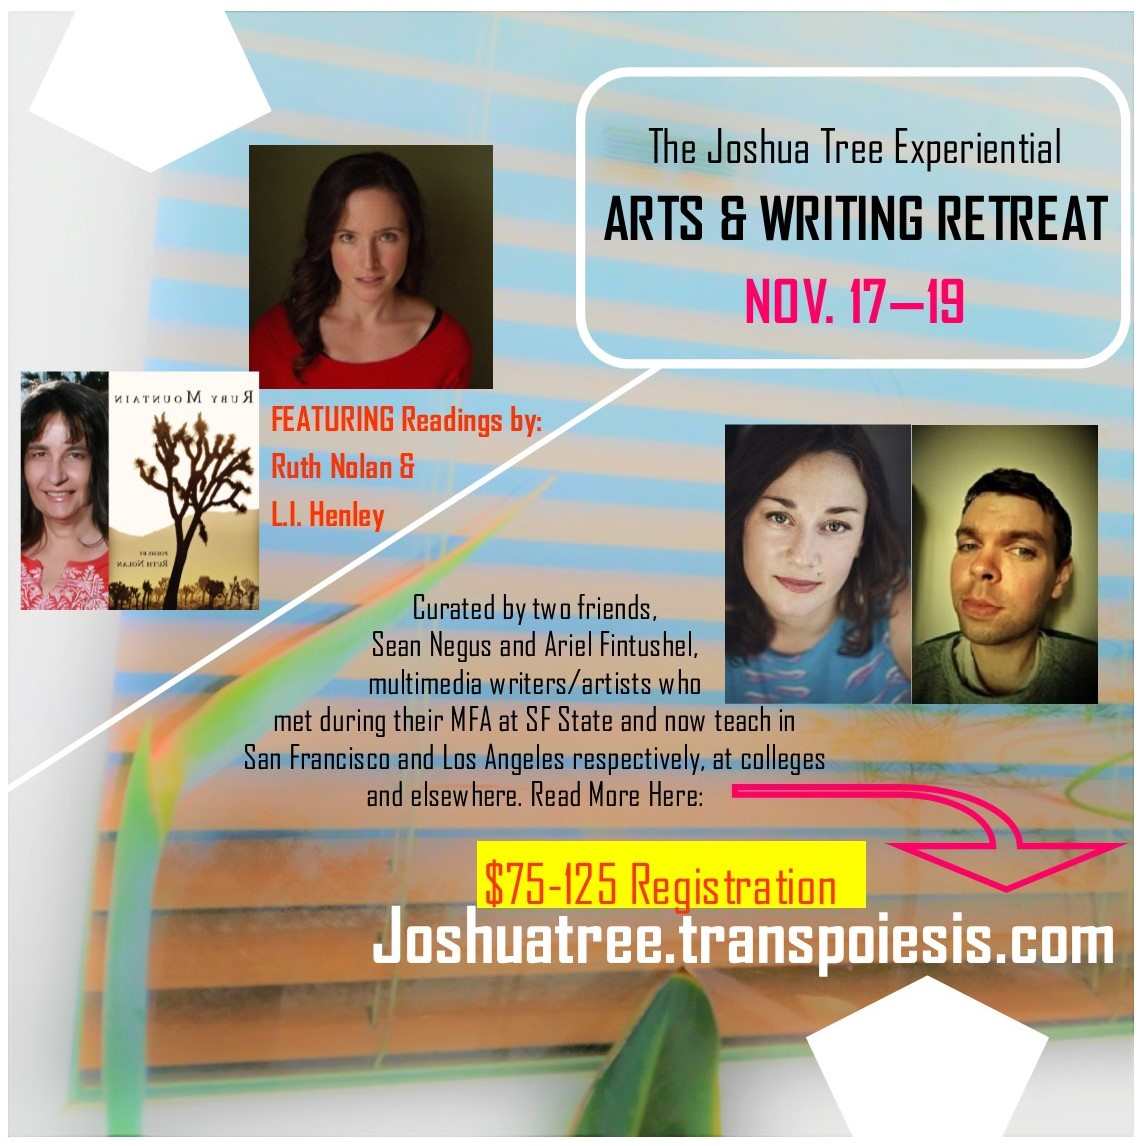 event flyer with images of retreat facilitators and short bios